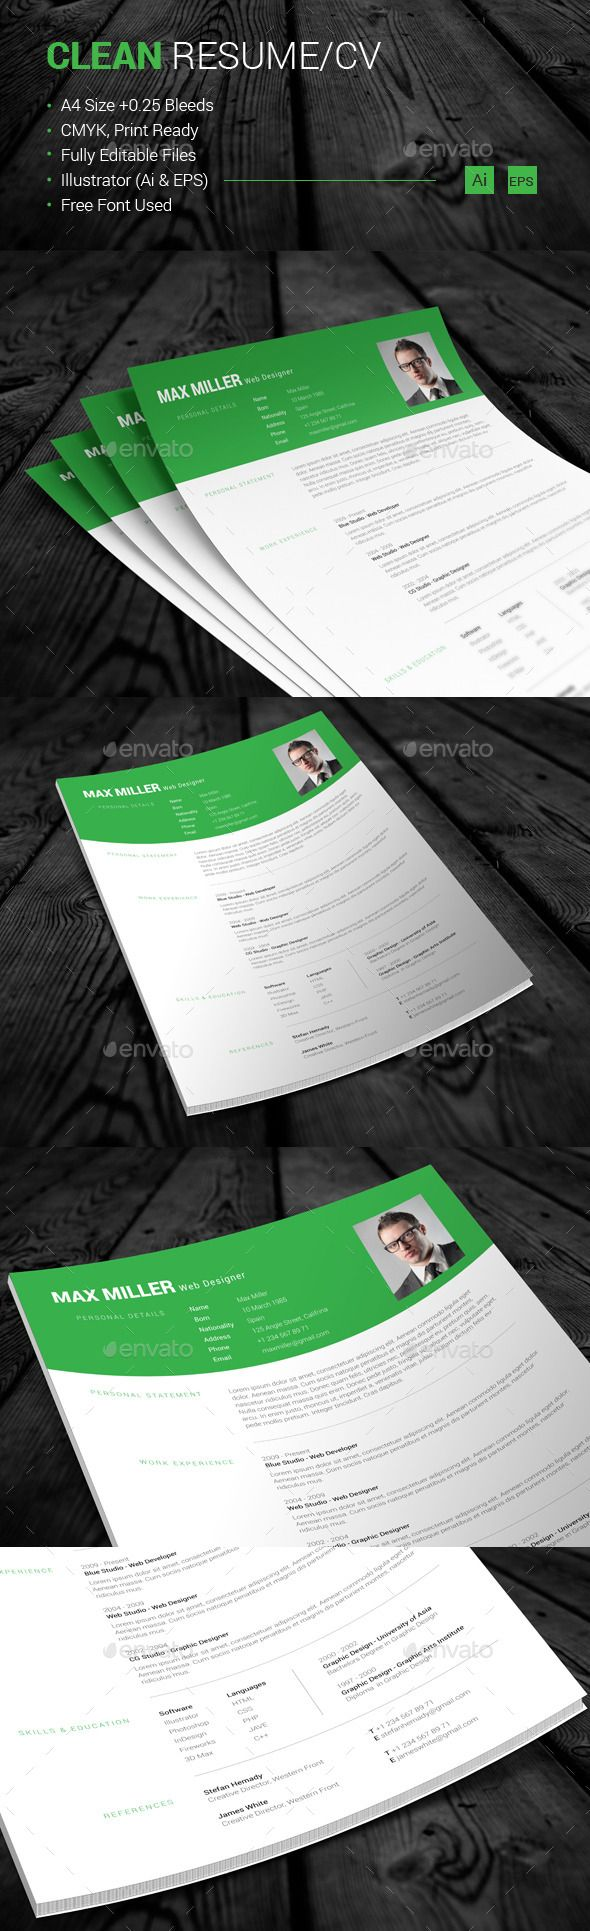 Clean ResumeCV Template Download httpgraphicrivernet Clean